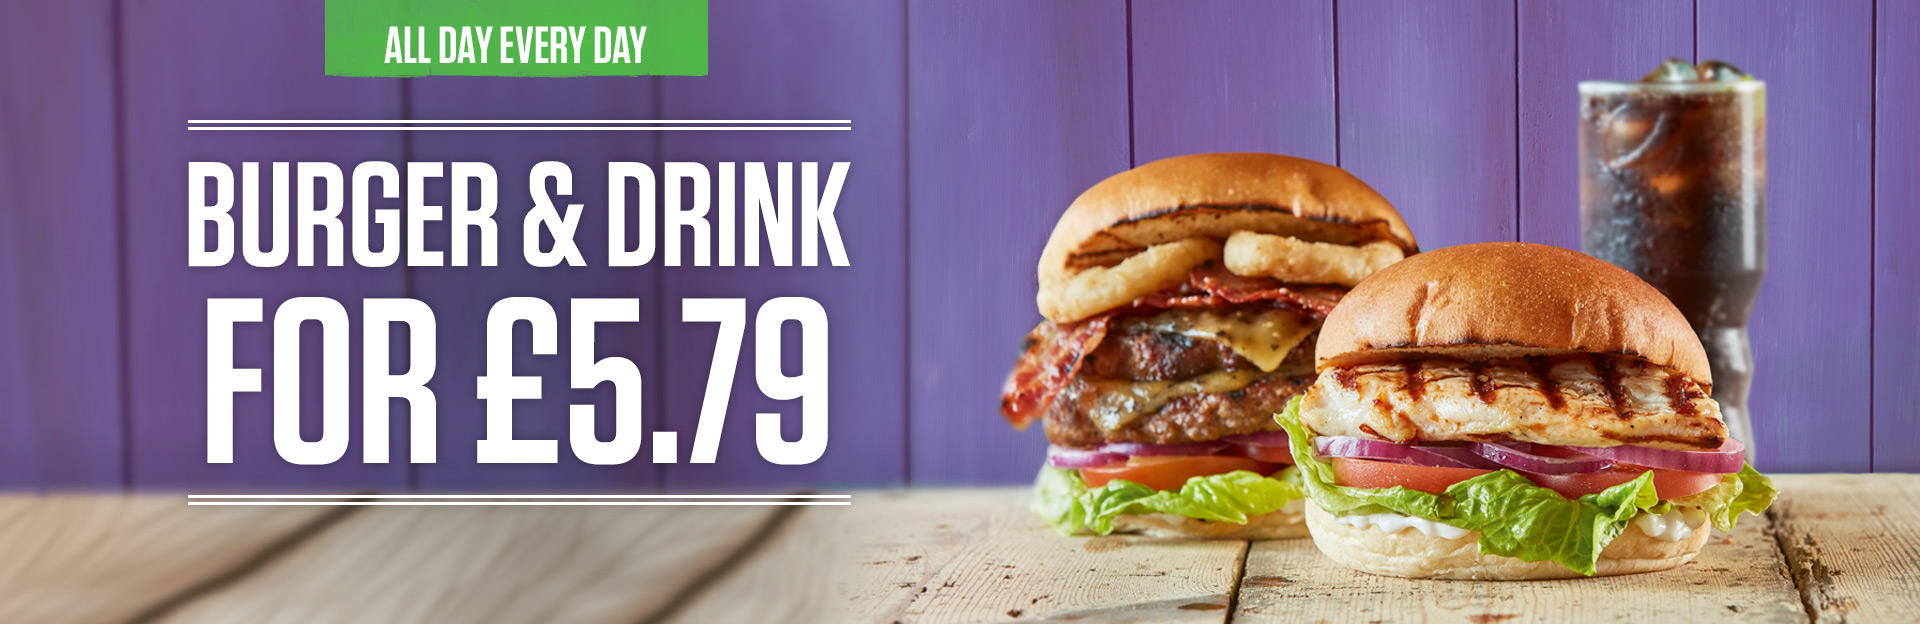 Burger and Drink Deal at The Norton